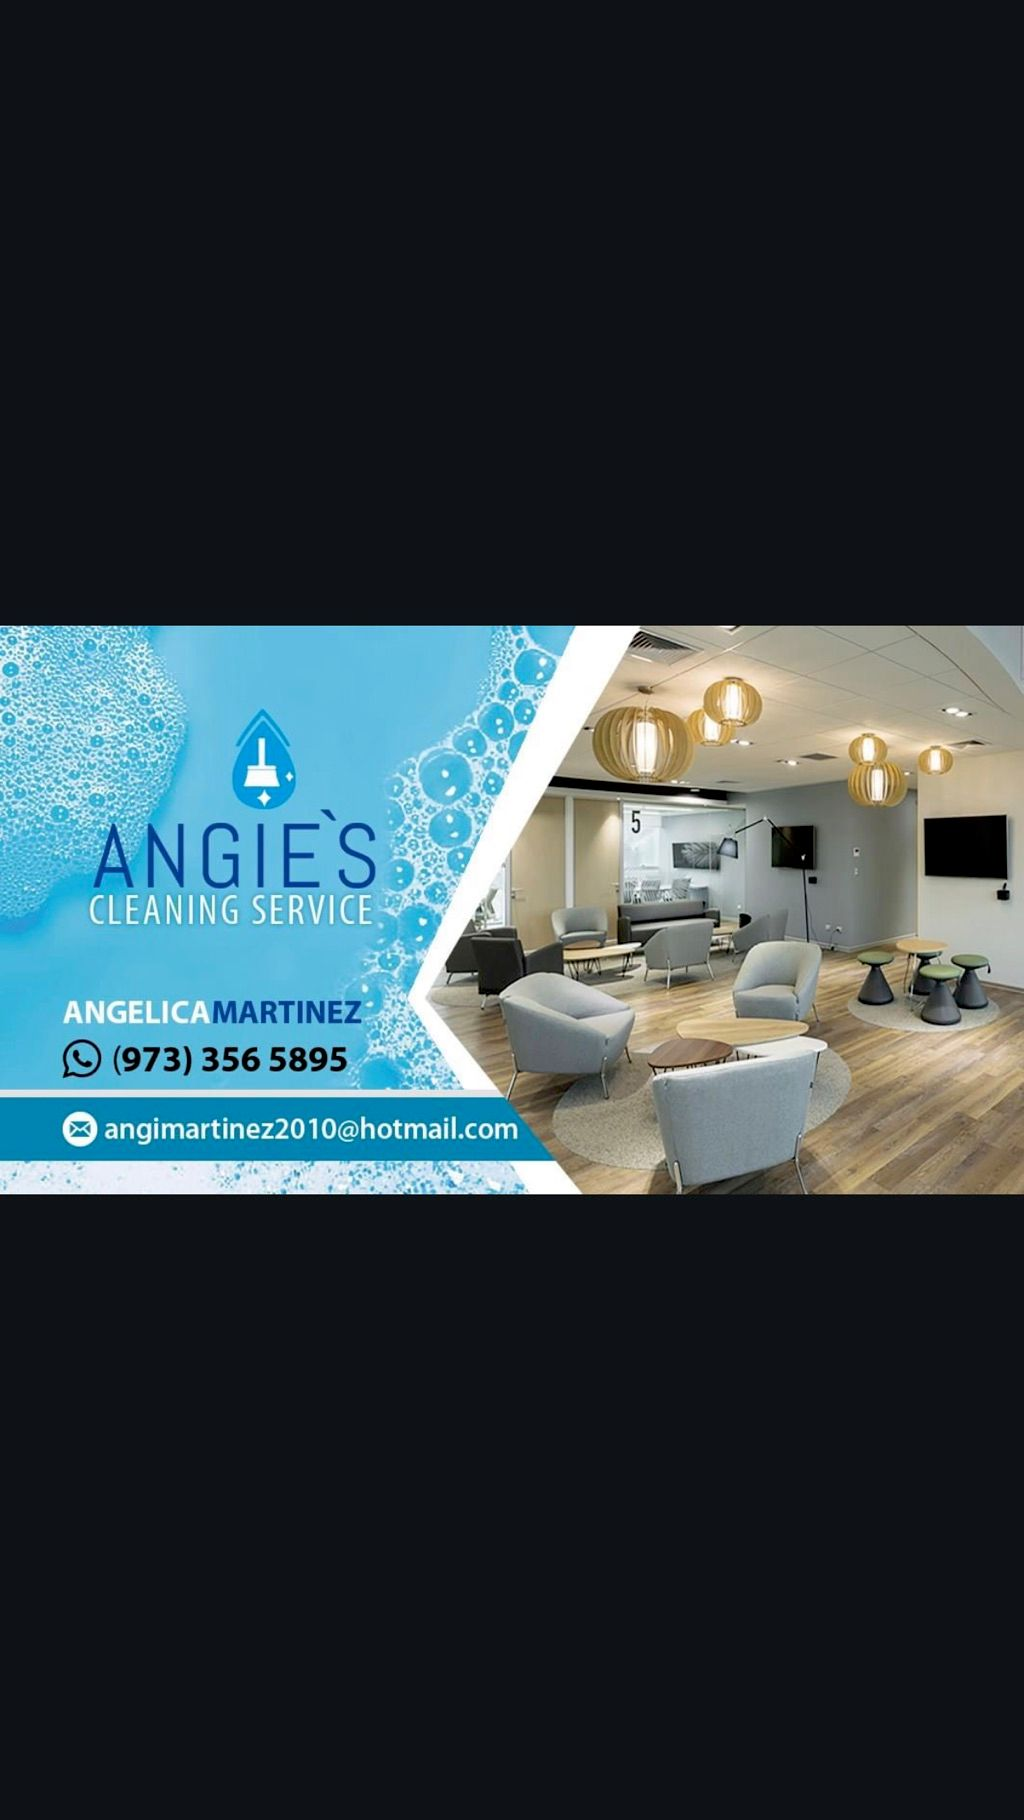 ANGIE'S CLEANING SERVICE